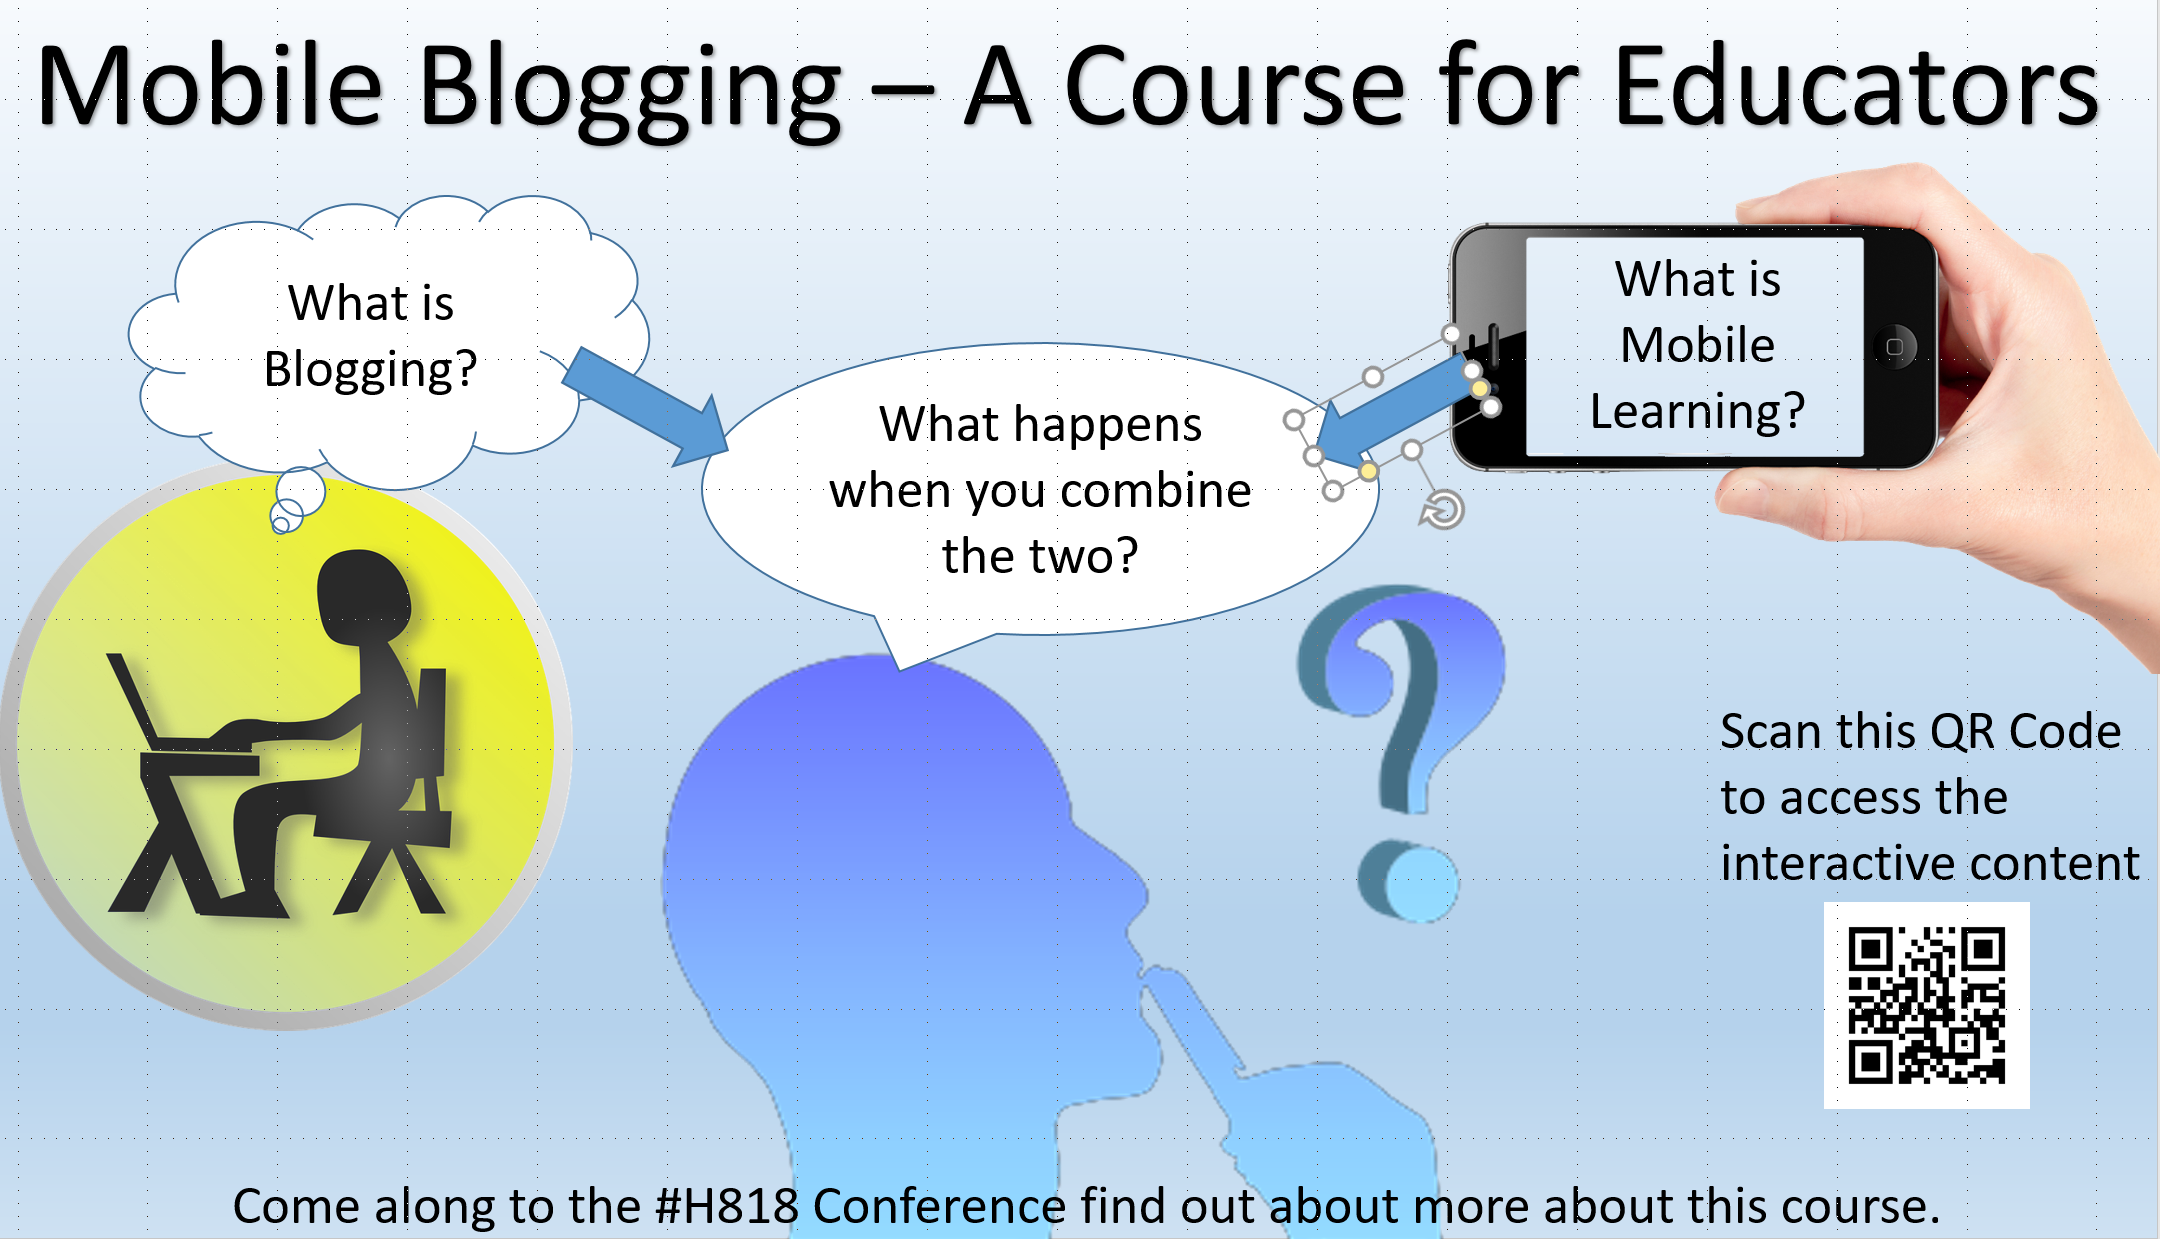 This image shows a conference posted advertising the H818 Open University Conference.  It includes a QR Code which enables the reader to access and Augmented Reality layer with two playable videos.